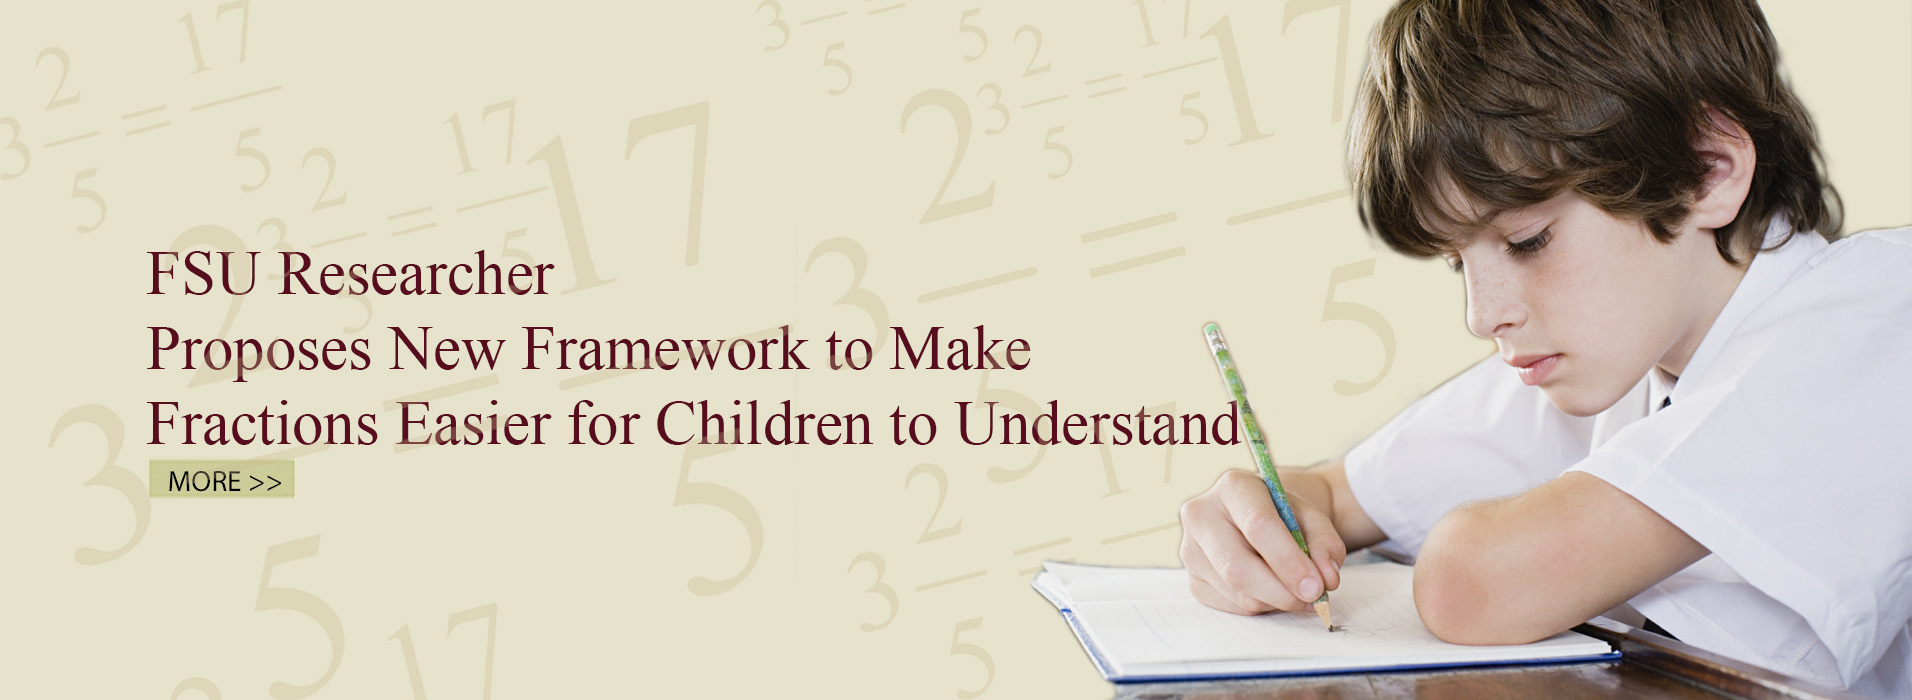 FSU Researcher Proposes New Framework to Make Fractions Easier for Children to Understand